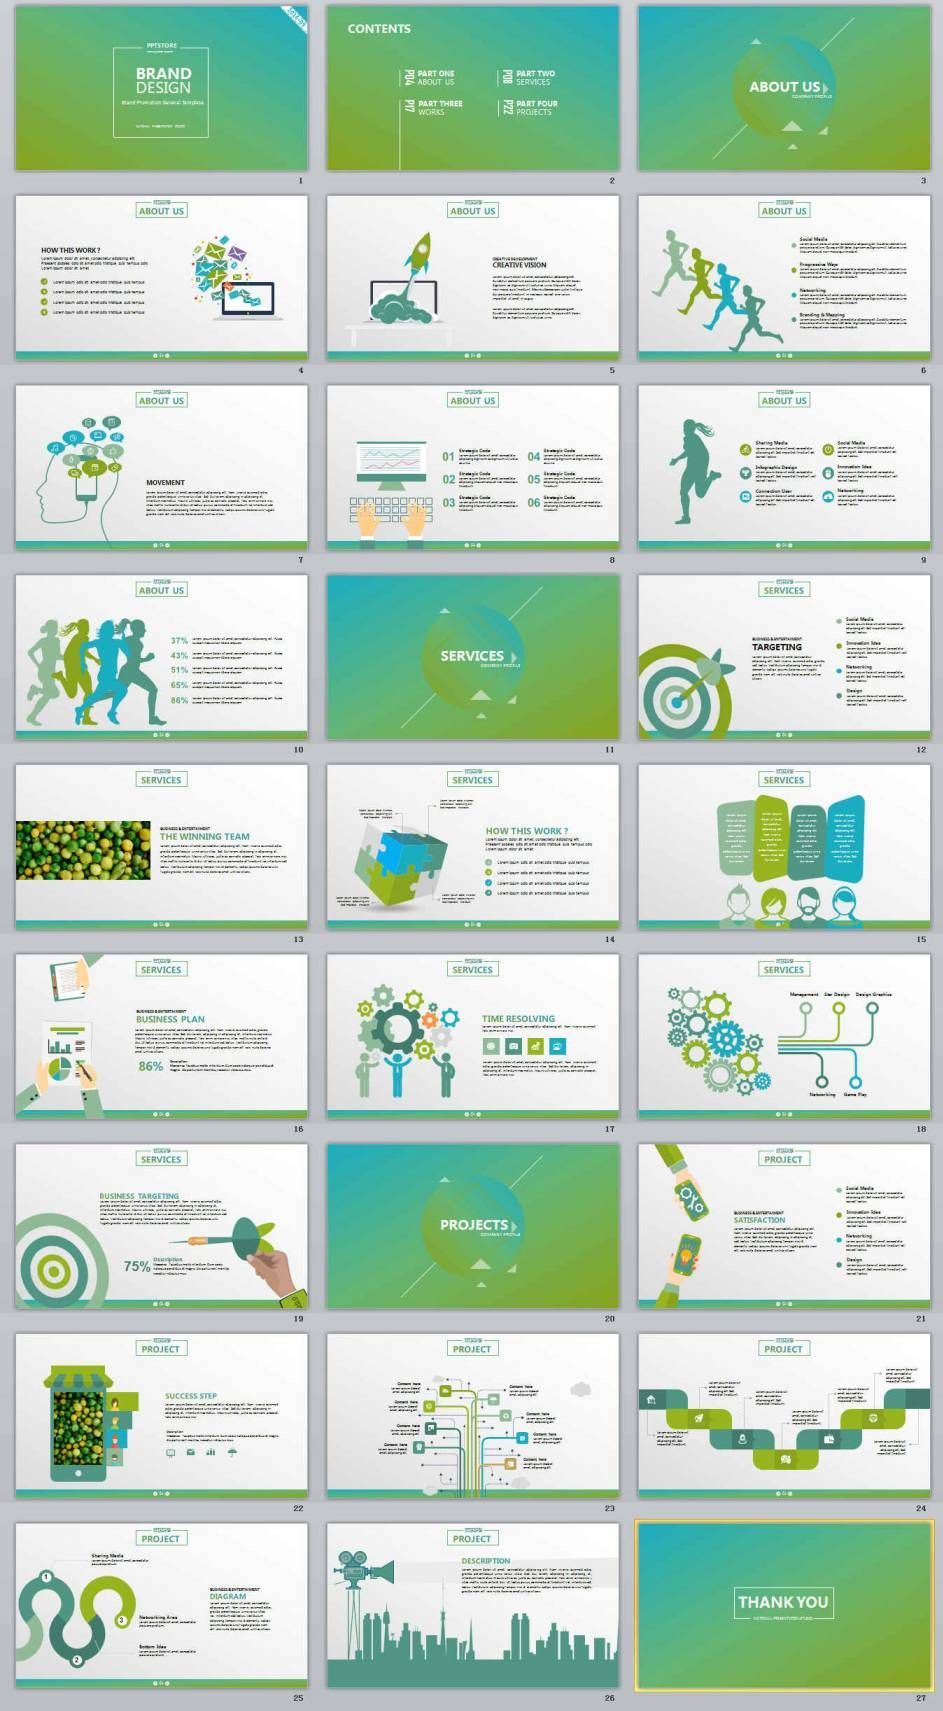 27brand design business professional powerpoint templates 27brand design business professional powerpoint templates powerpoint templates and keynote templates toneelgroepblik Image collections